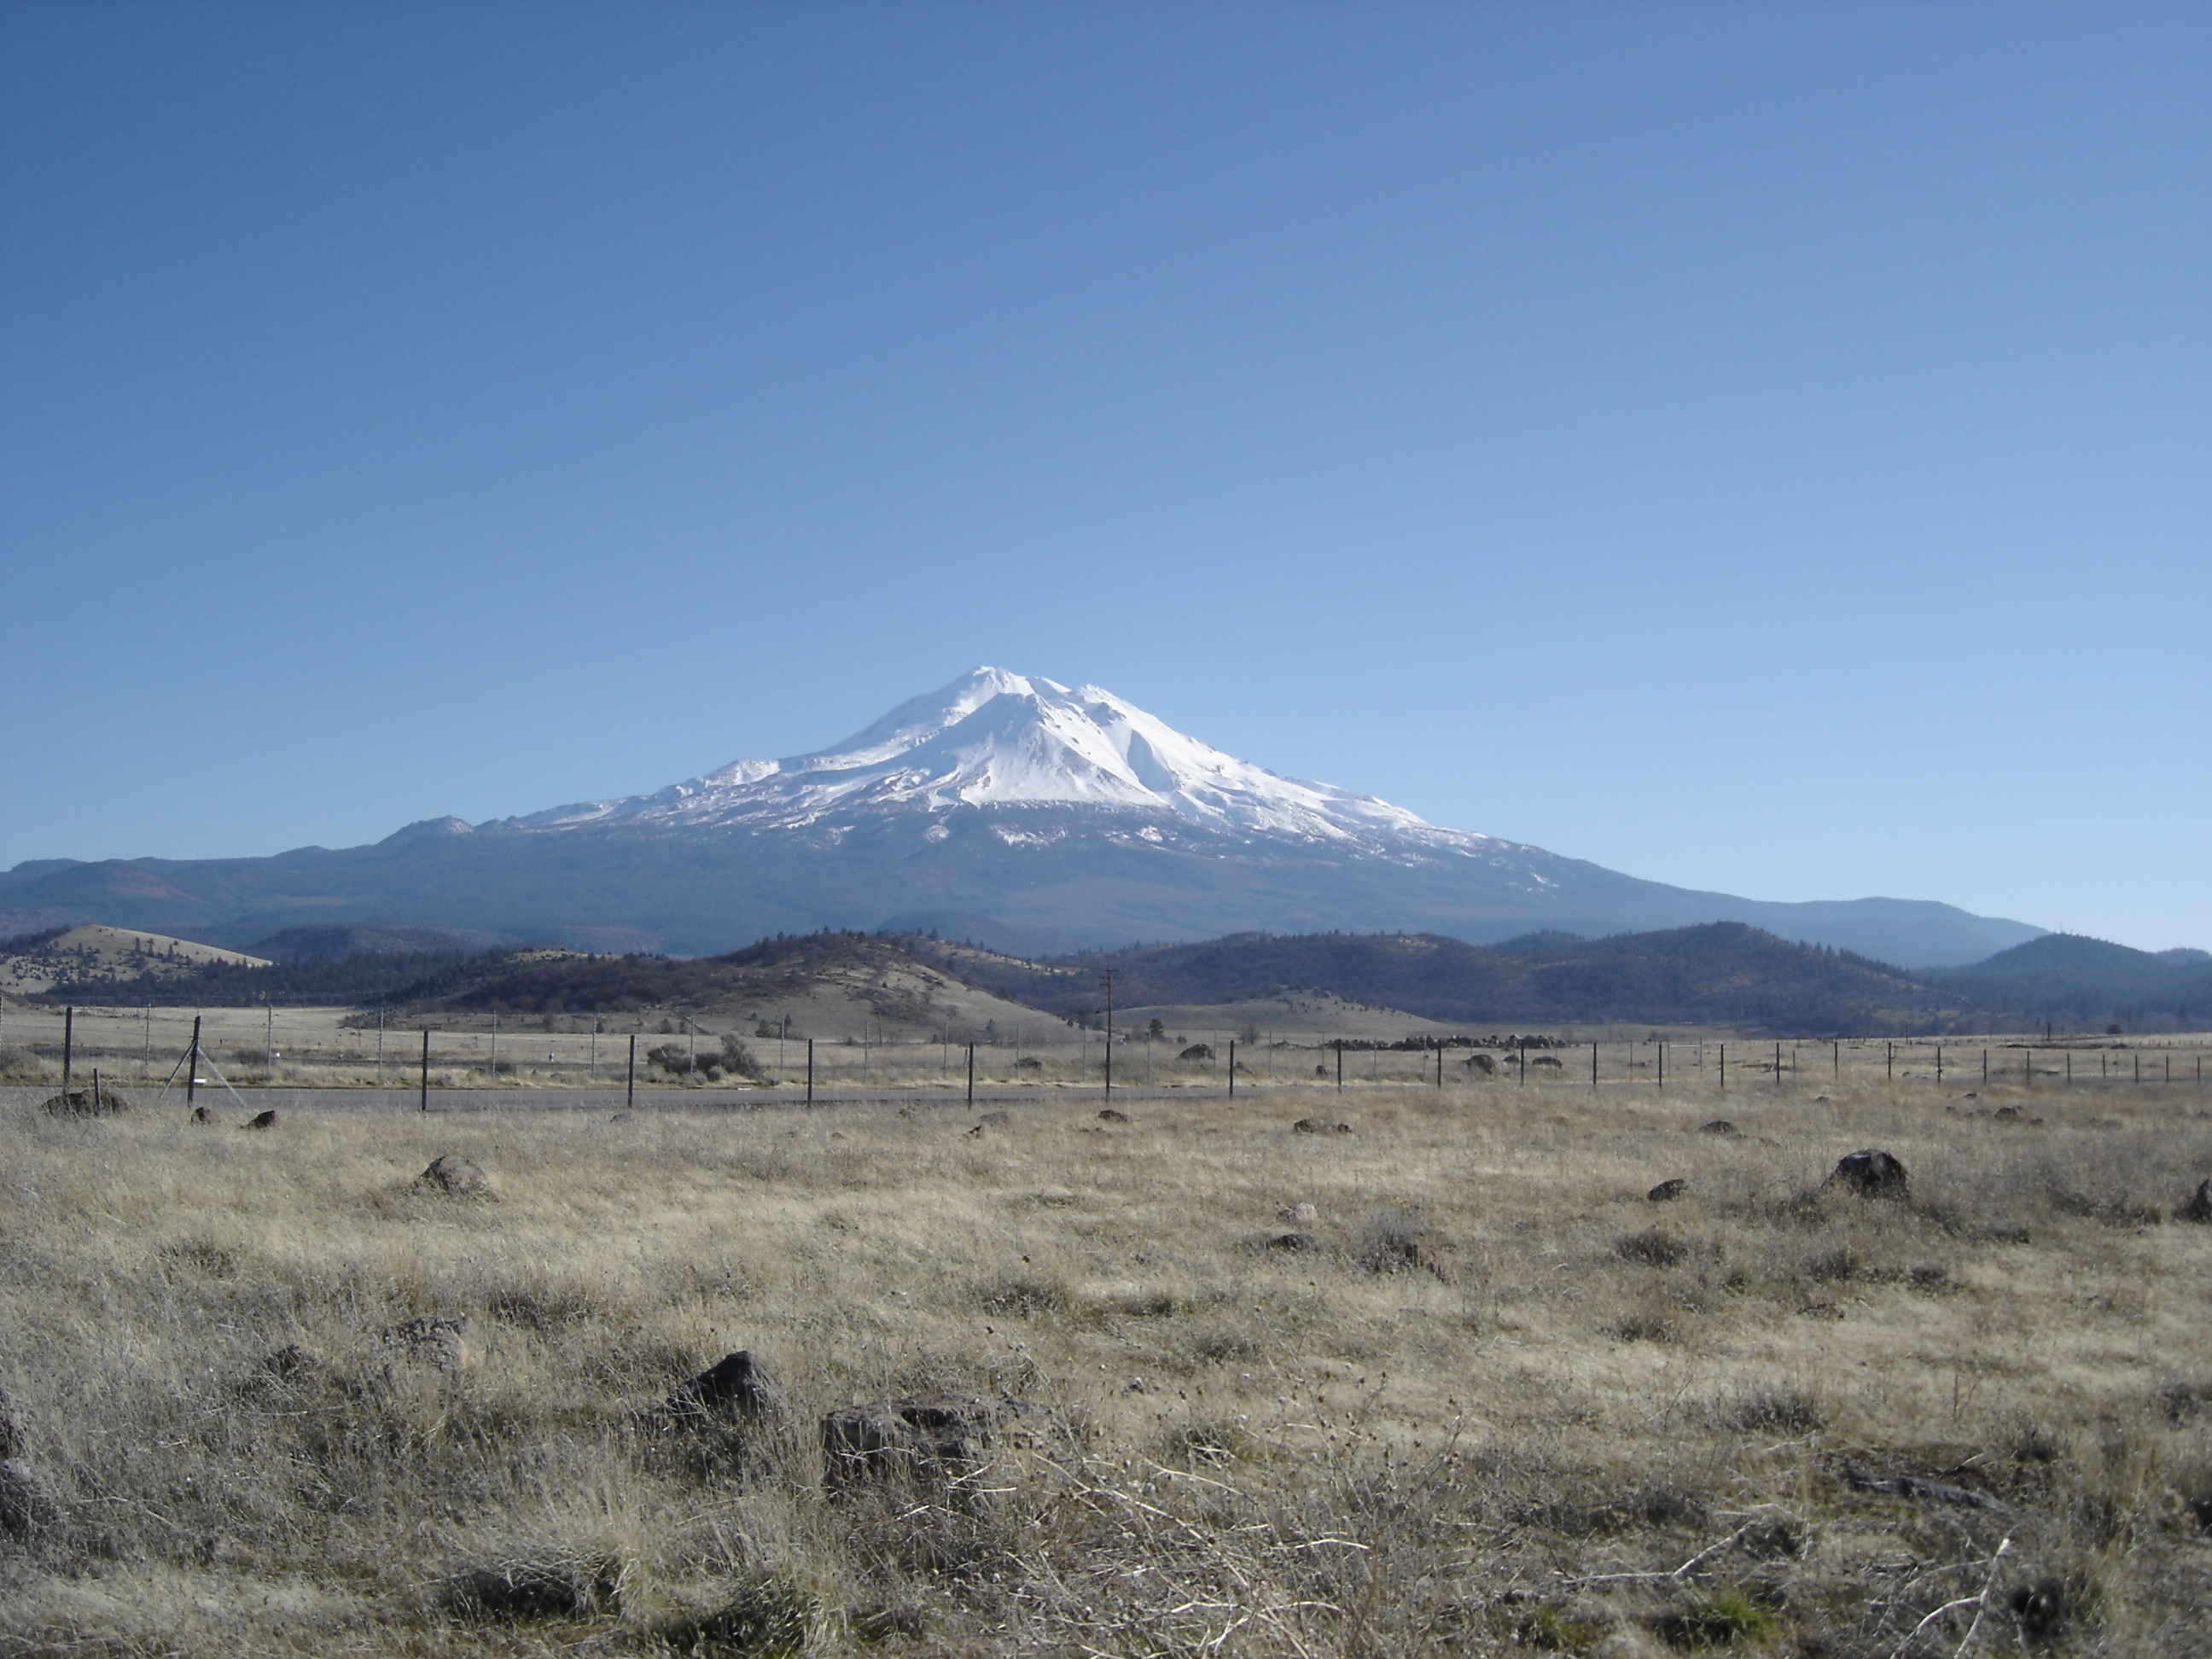 mount shasta jewish dating site Ebscohost serves thousands of libraries with premium essays, articles and other content including on the origin of watchers: a comparative study of the antediluvian wisdom in mesopotamian.